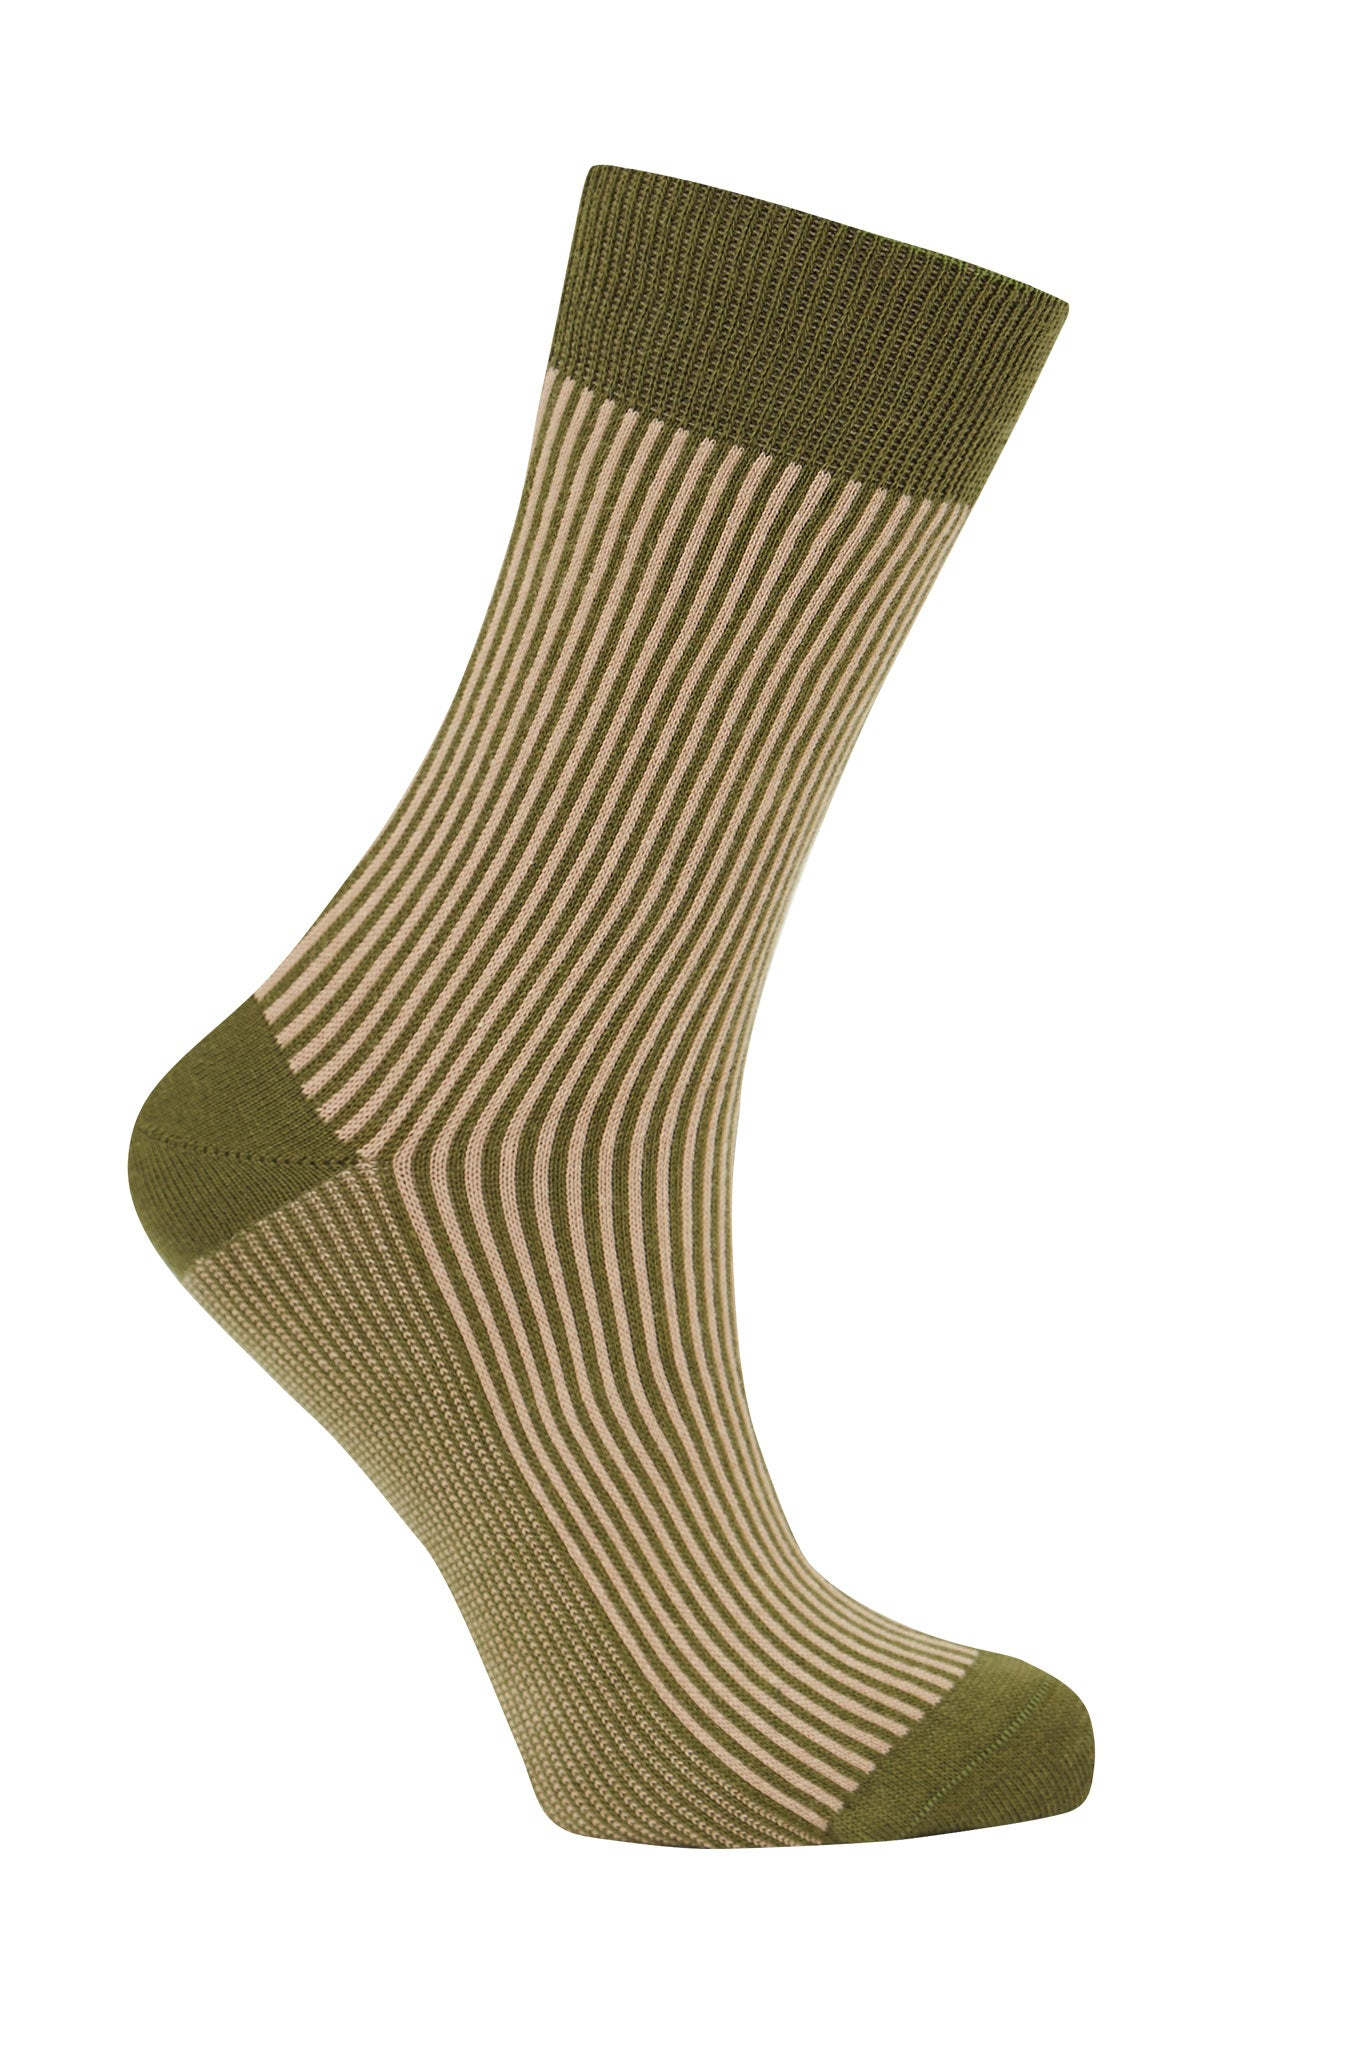 VERTICAL Olive - GOTS Organic Cotton Socks